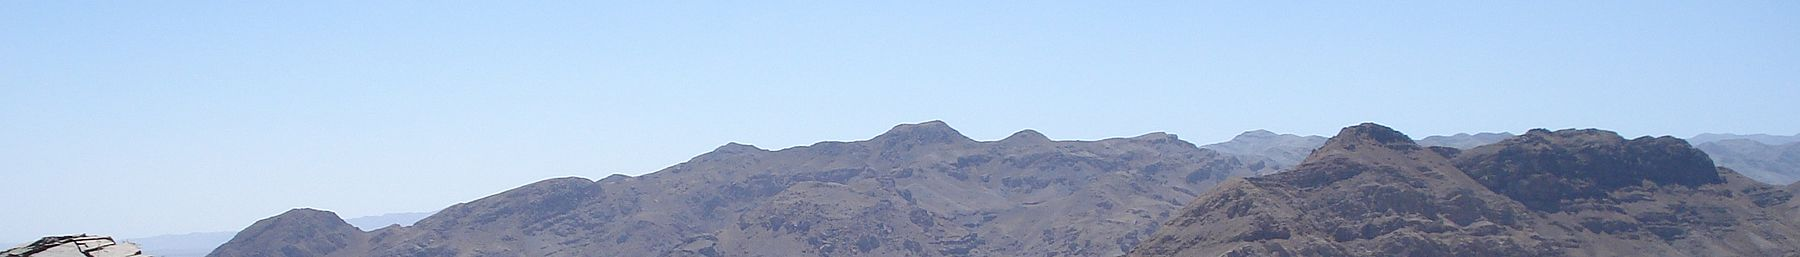 WV banner Khorasan Mountains in Zibad Gonabad.jpg